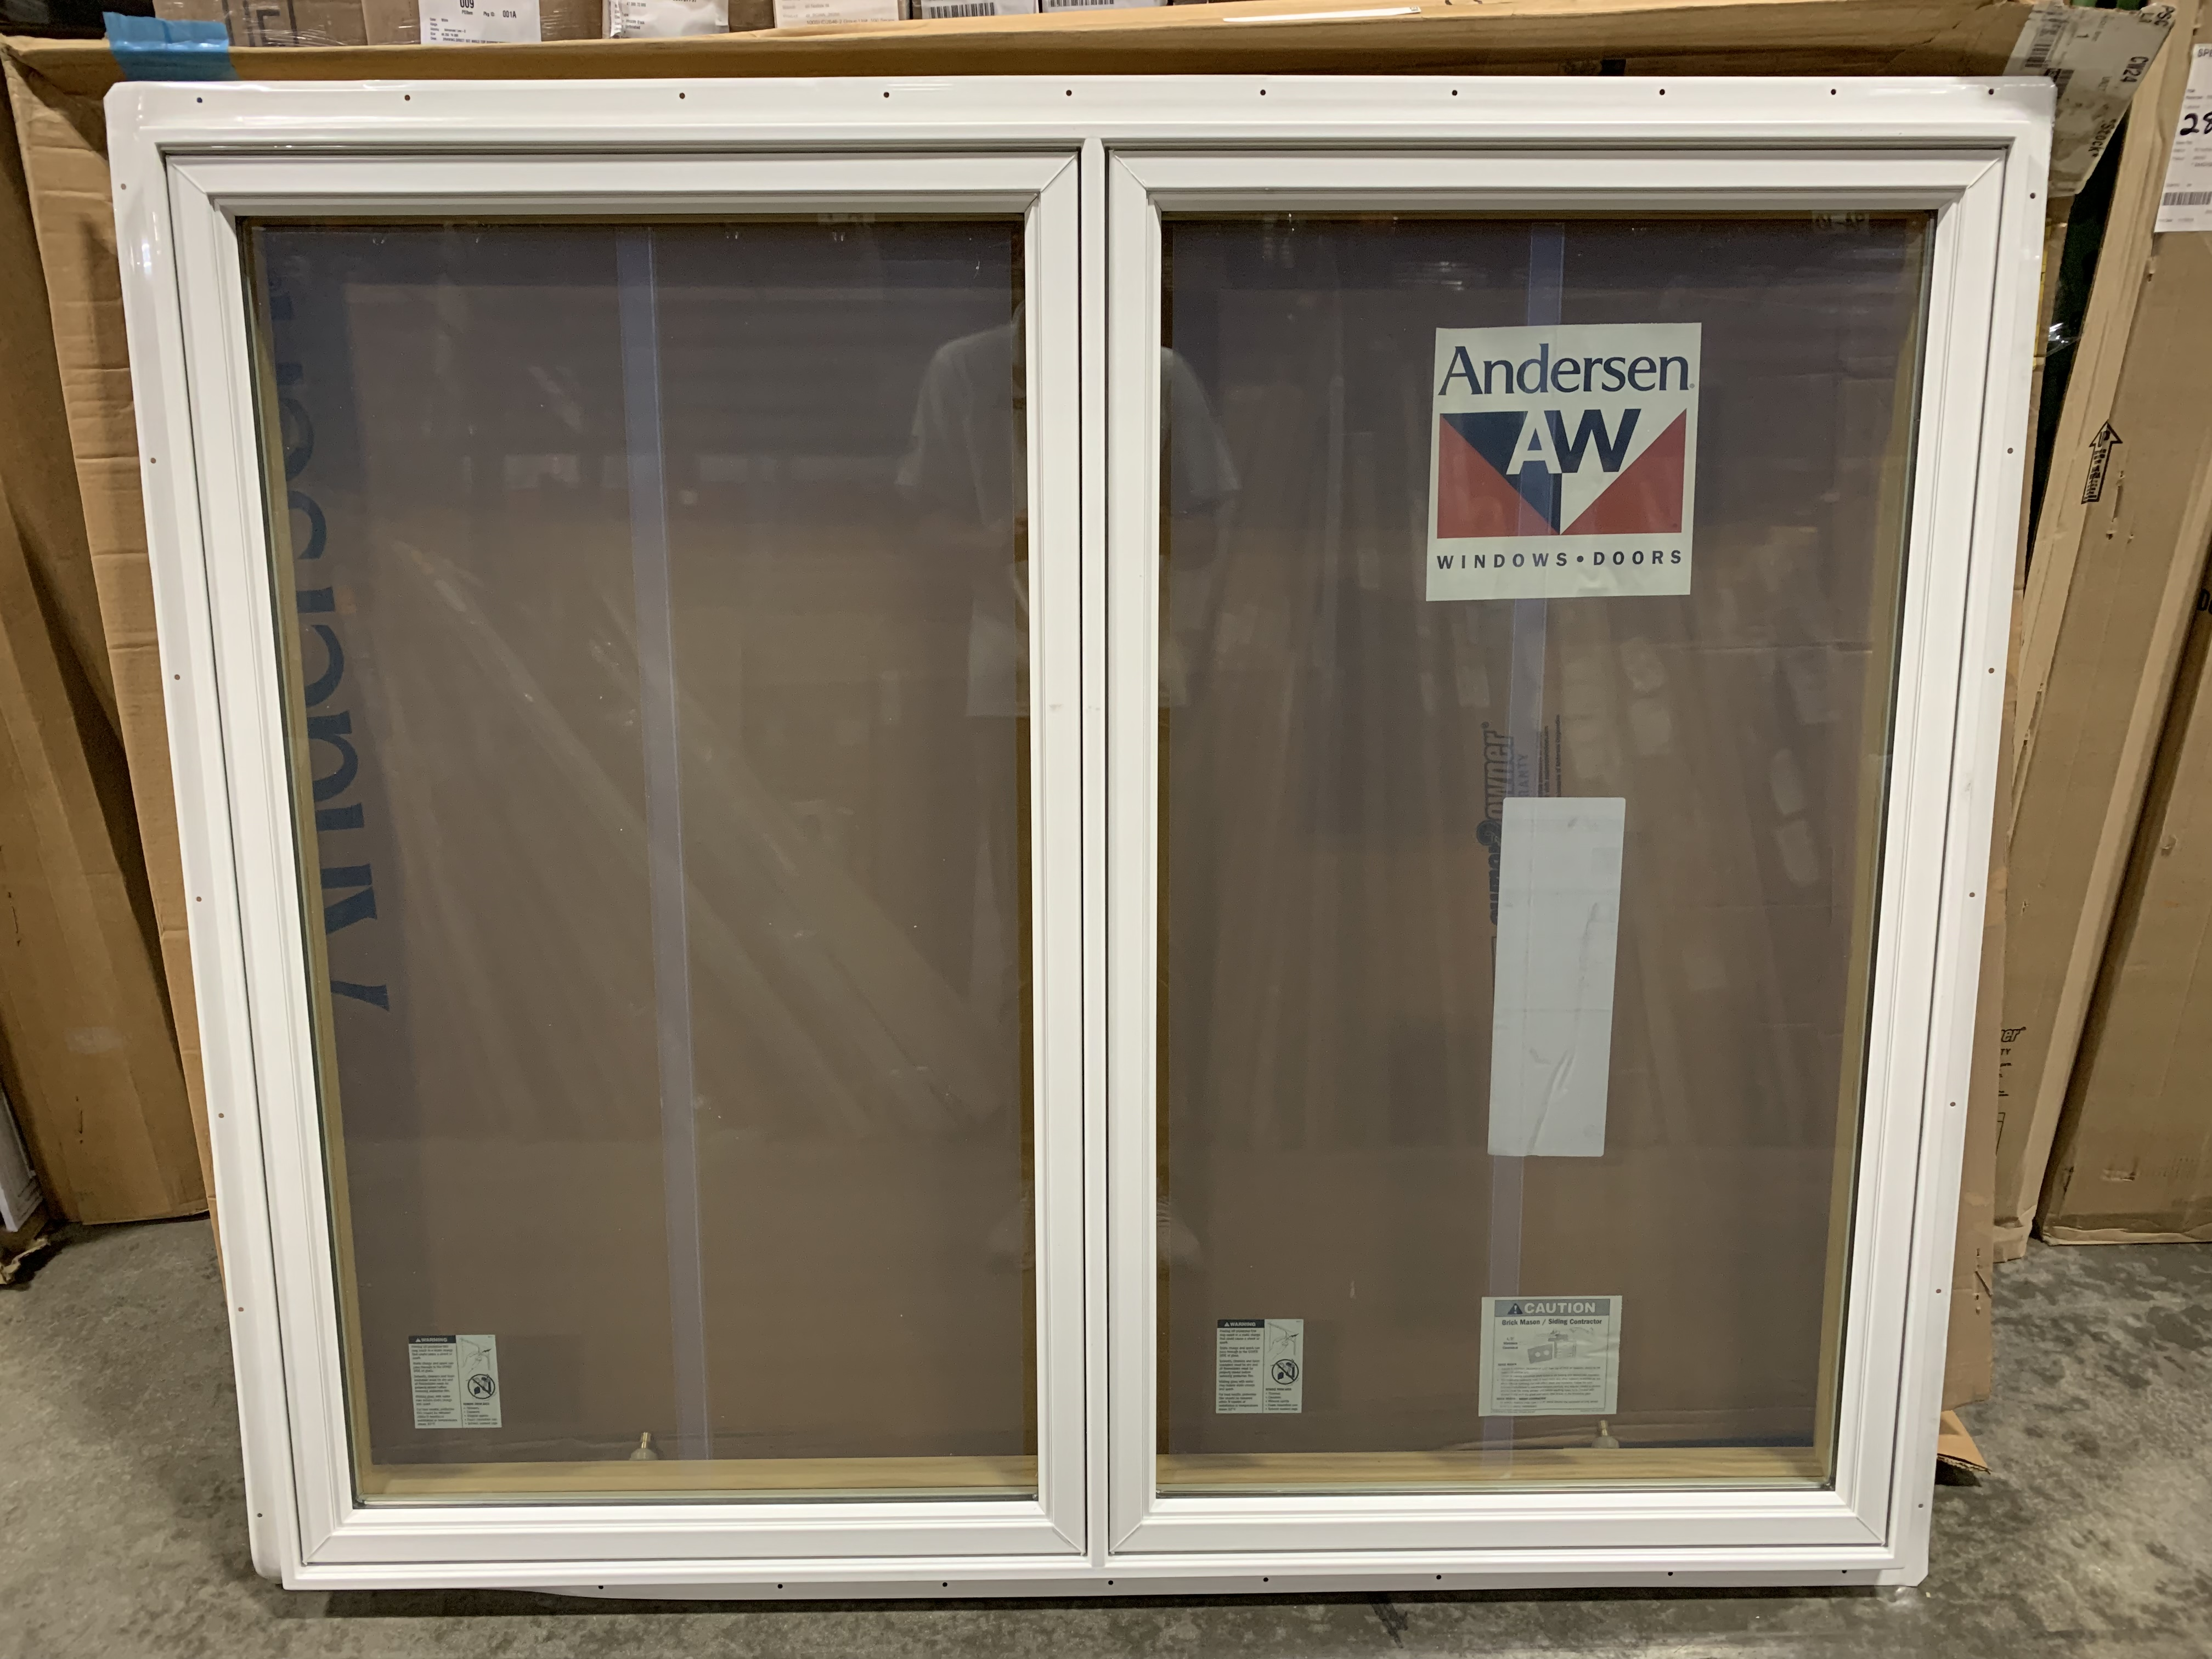 Andersen 400 Series Dual Pane LR Handing Casement Window